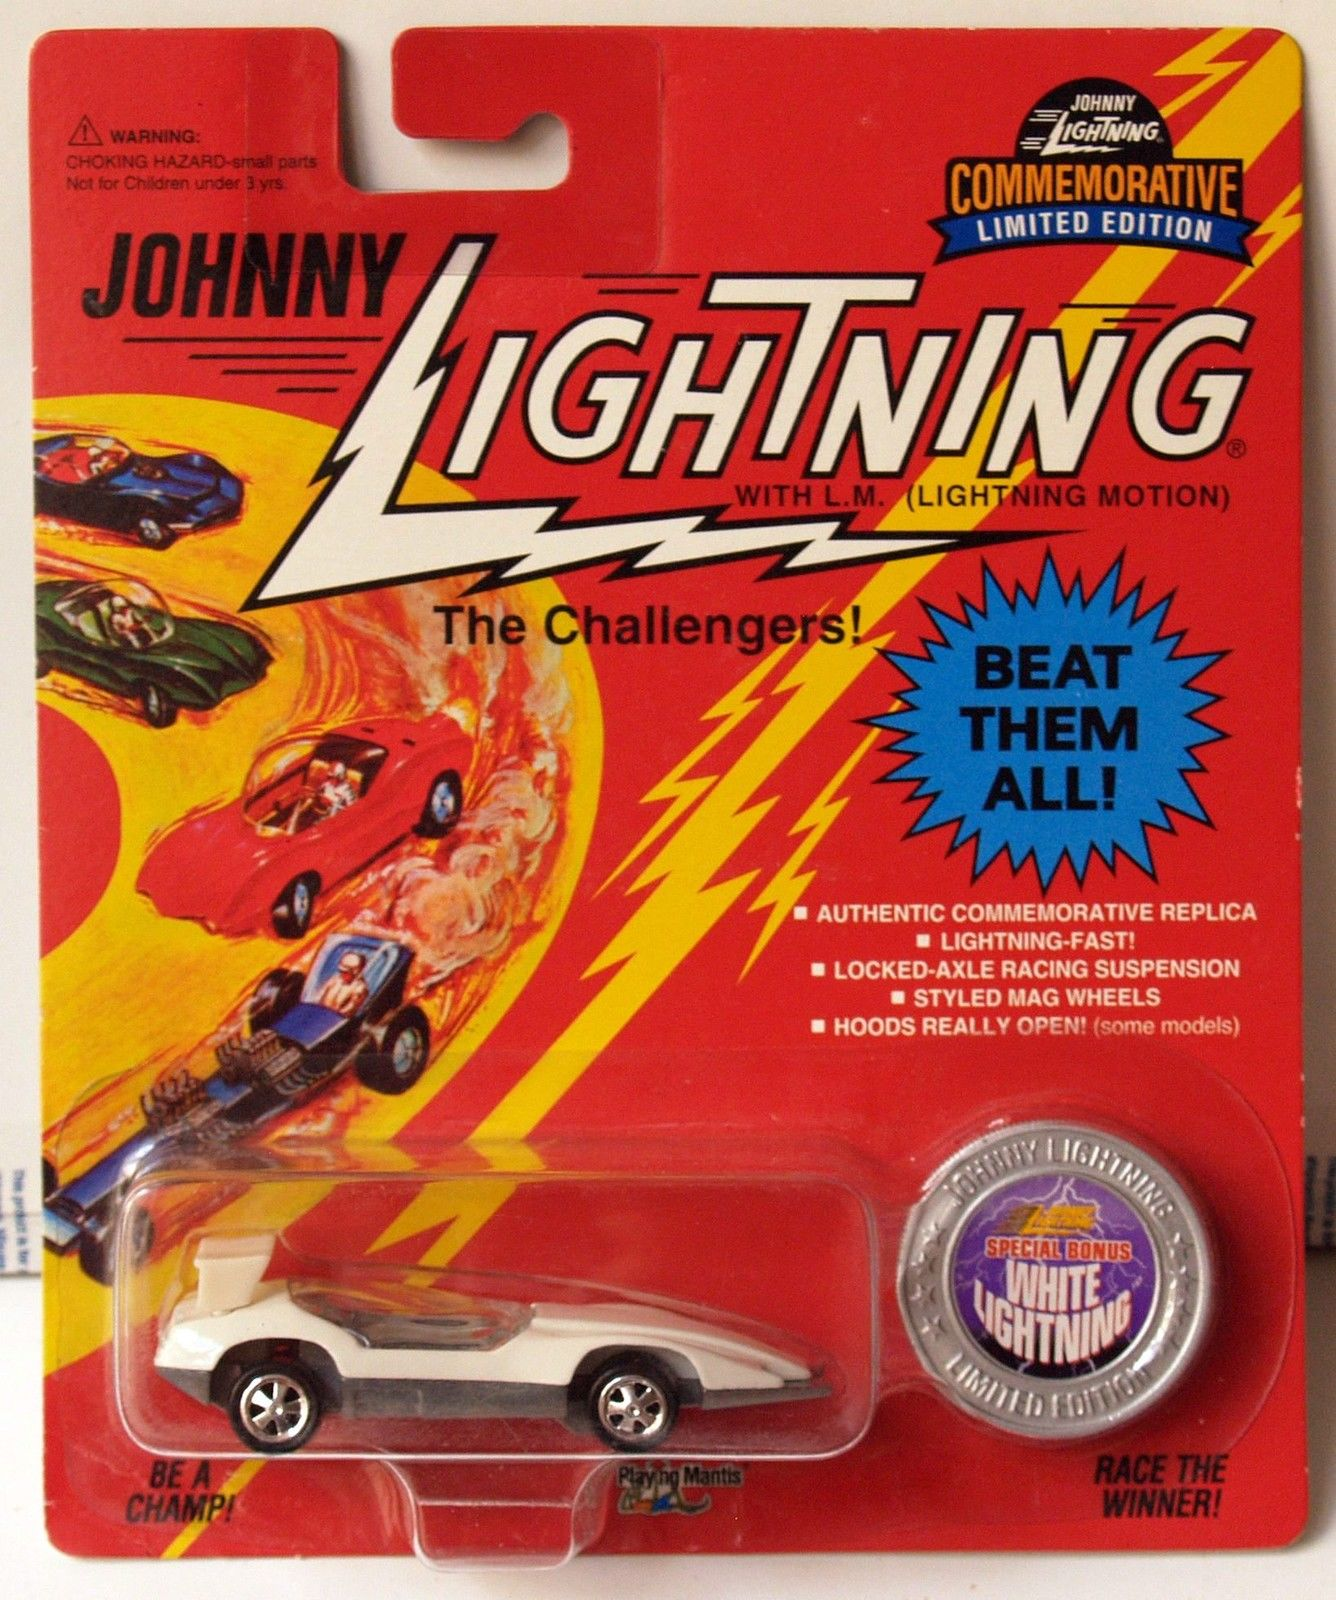 JOHNNY LIGHTNING COMMEMORATIVE - WHITE CUSTOM SPOILER - SPECIAL BONUS